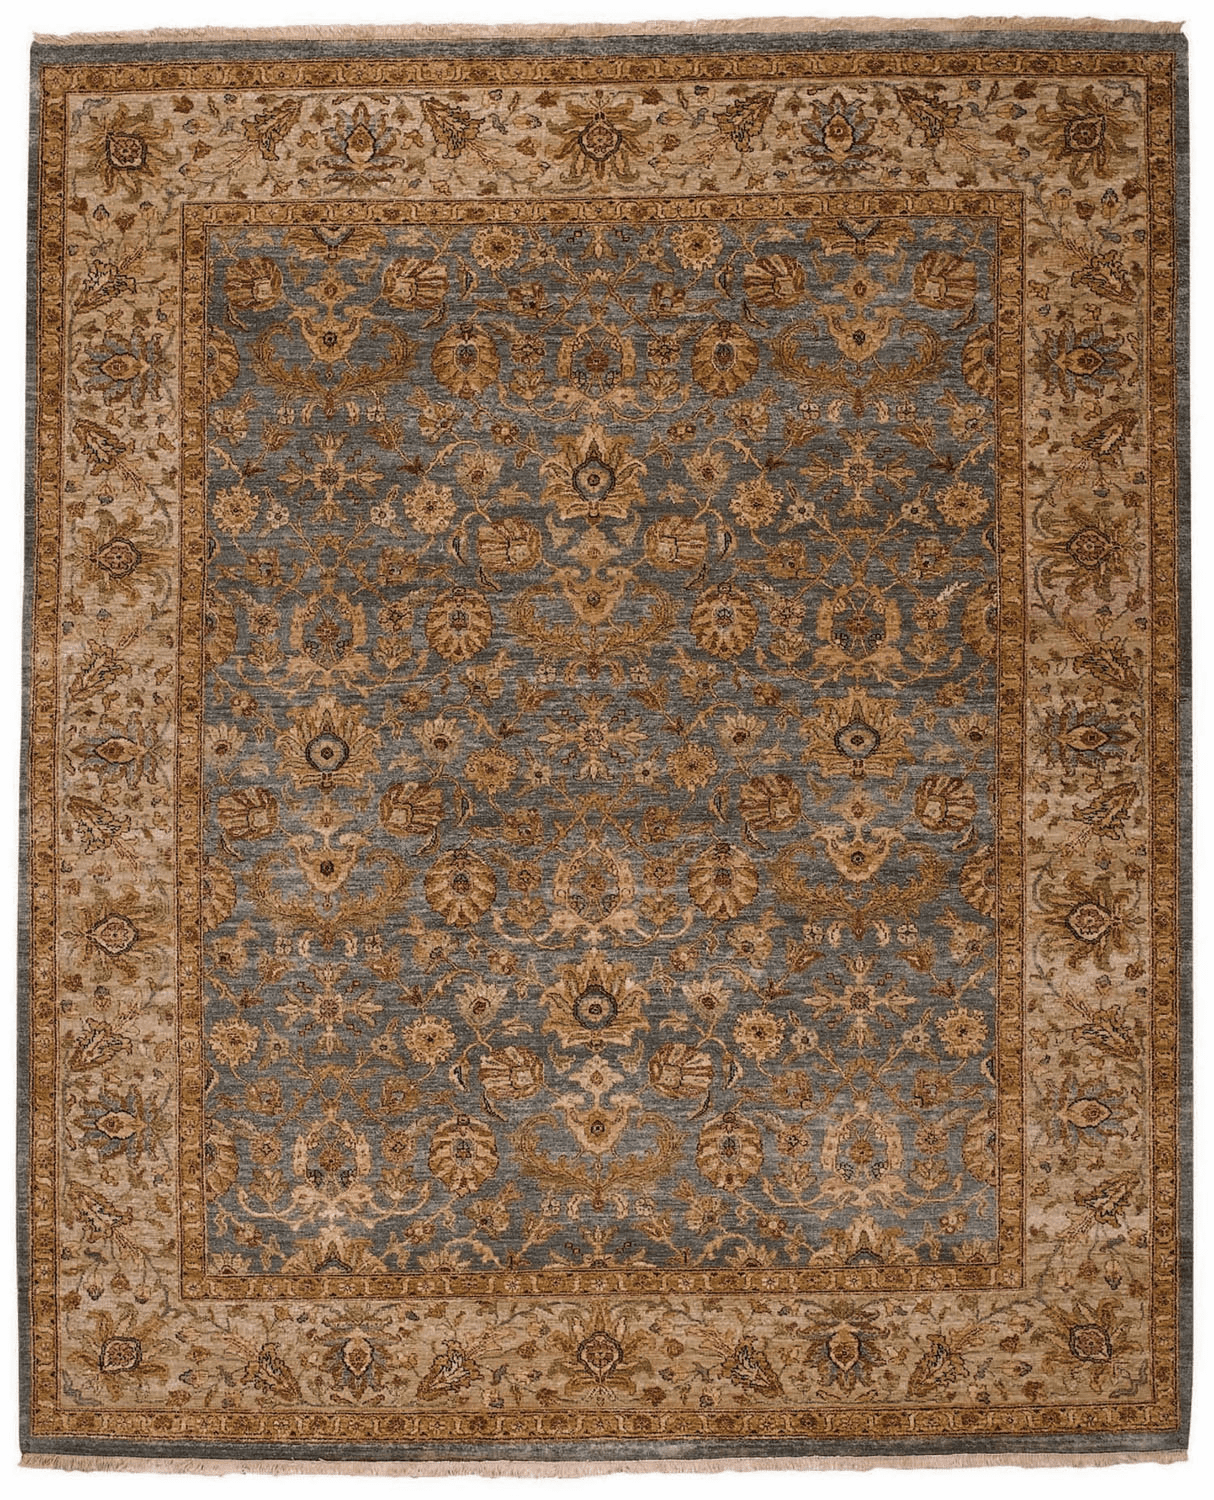 Hand Knotted Medium Blue and Beige Rug